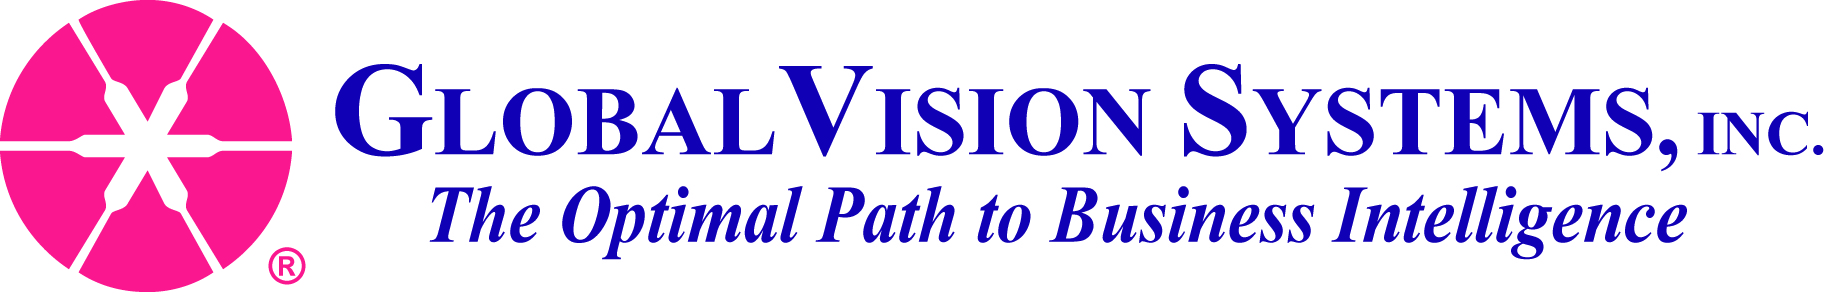 GVSI-Logo_OptimalPath-05272016-1